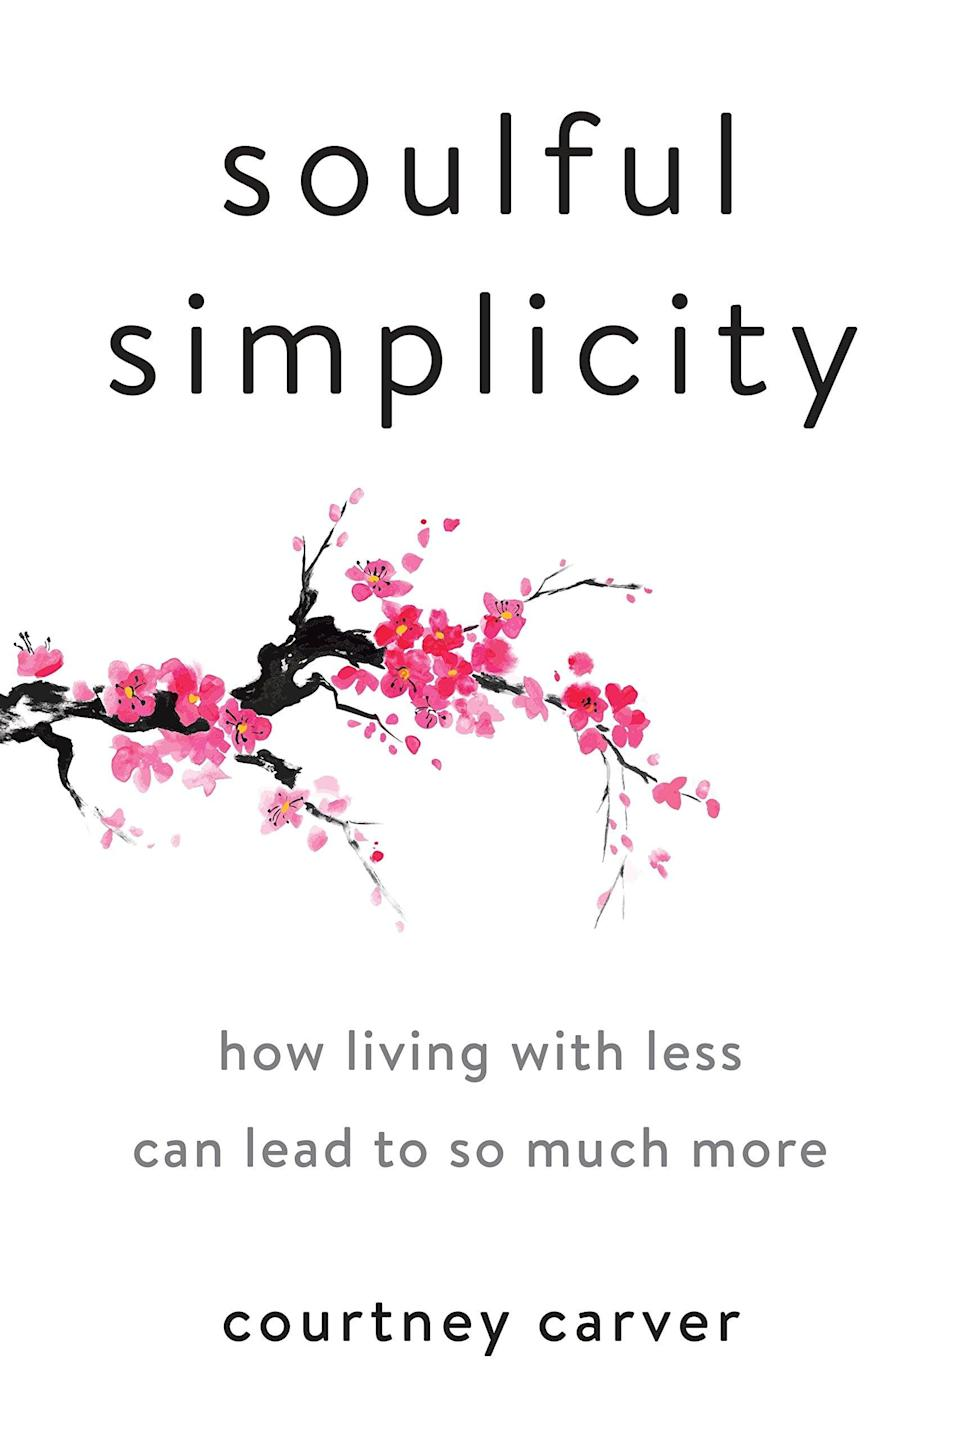 <p>There's much more to simplicity than what meets the eye! Courtney Carver, author of <b><span>Soulful Simplicity: How Living with Less Can Lead to So Much More</span></b>, highlights the process of pursuing a minimalistic lifestyle for the sake of easing stress while creating more time for space, love, and life.</p>